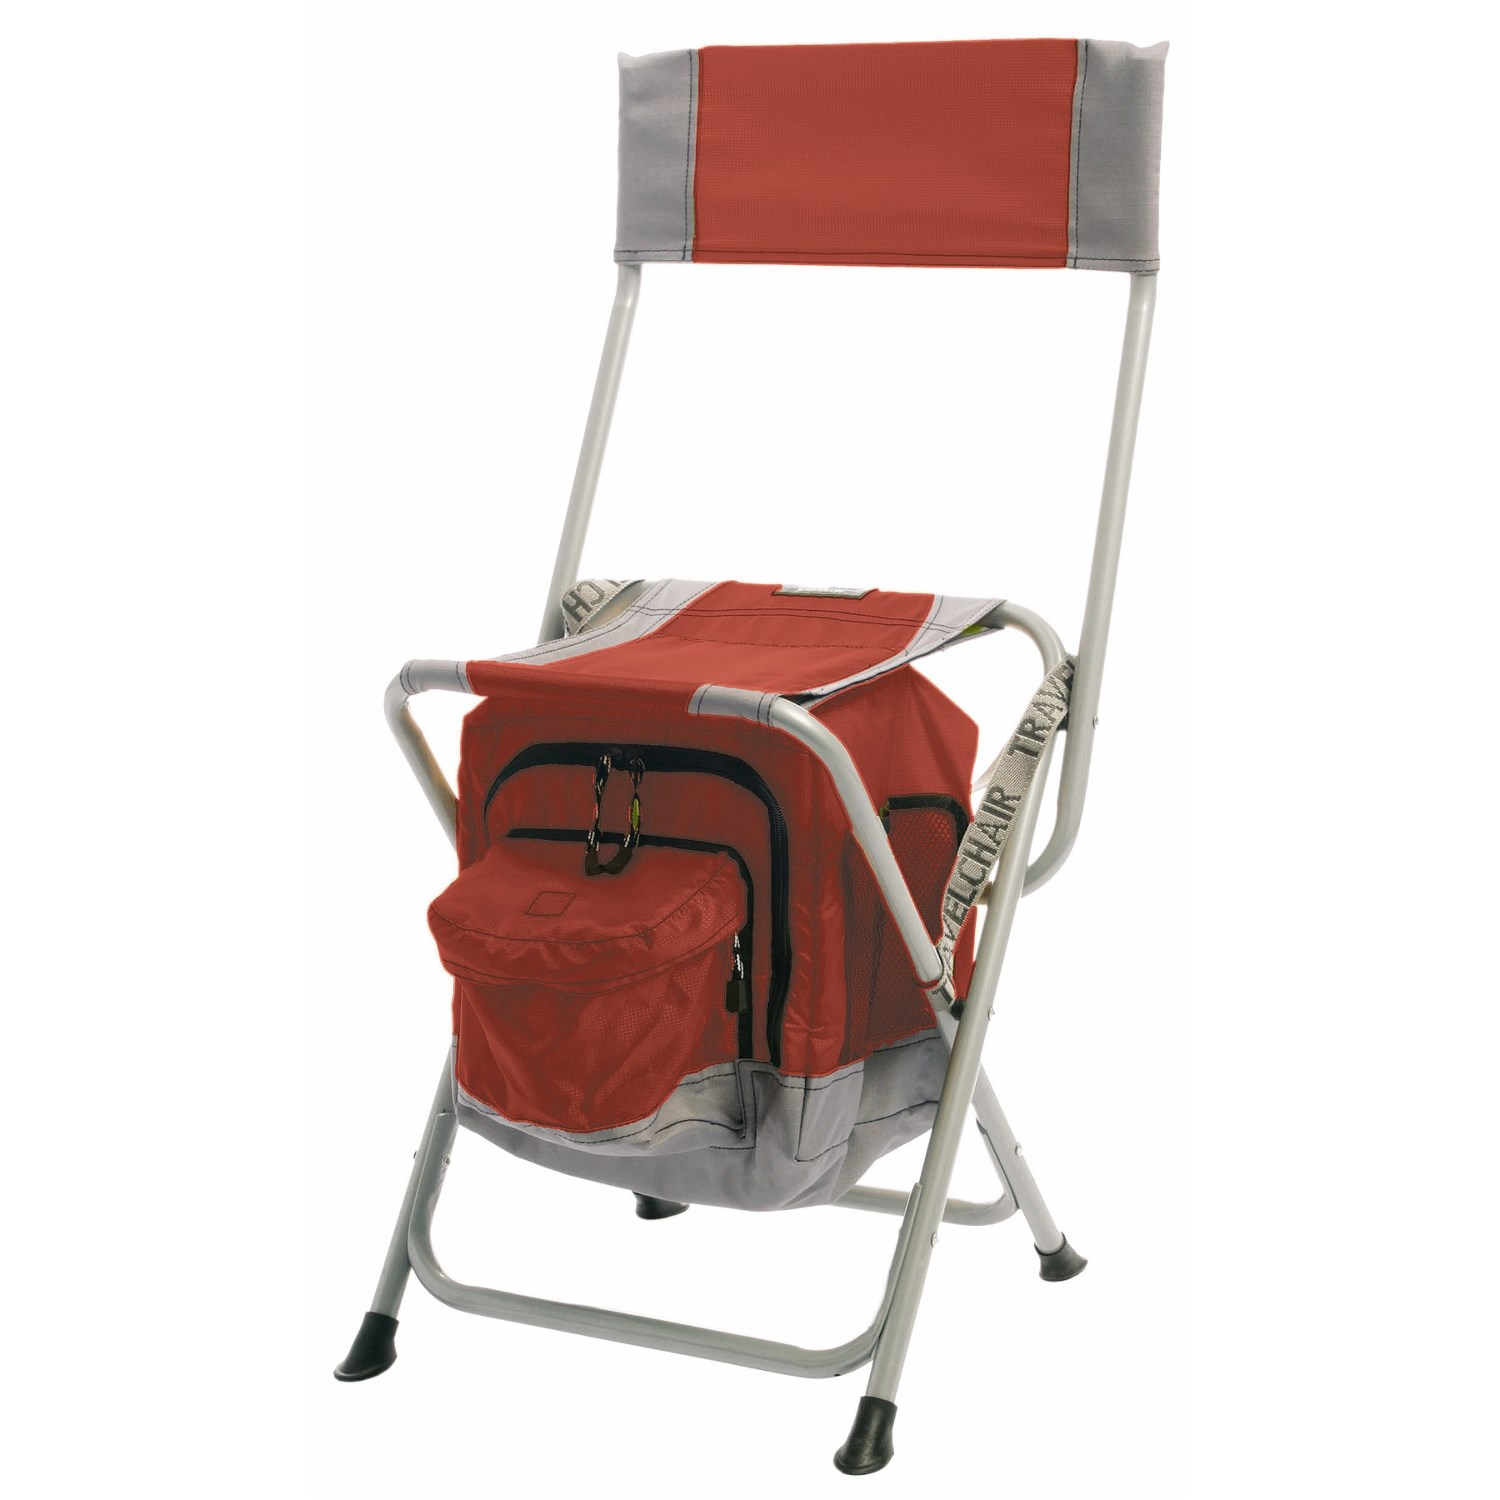 Chair Cooler Travelchair Anywhere Folding Chair With Cooler Save 50